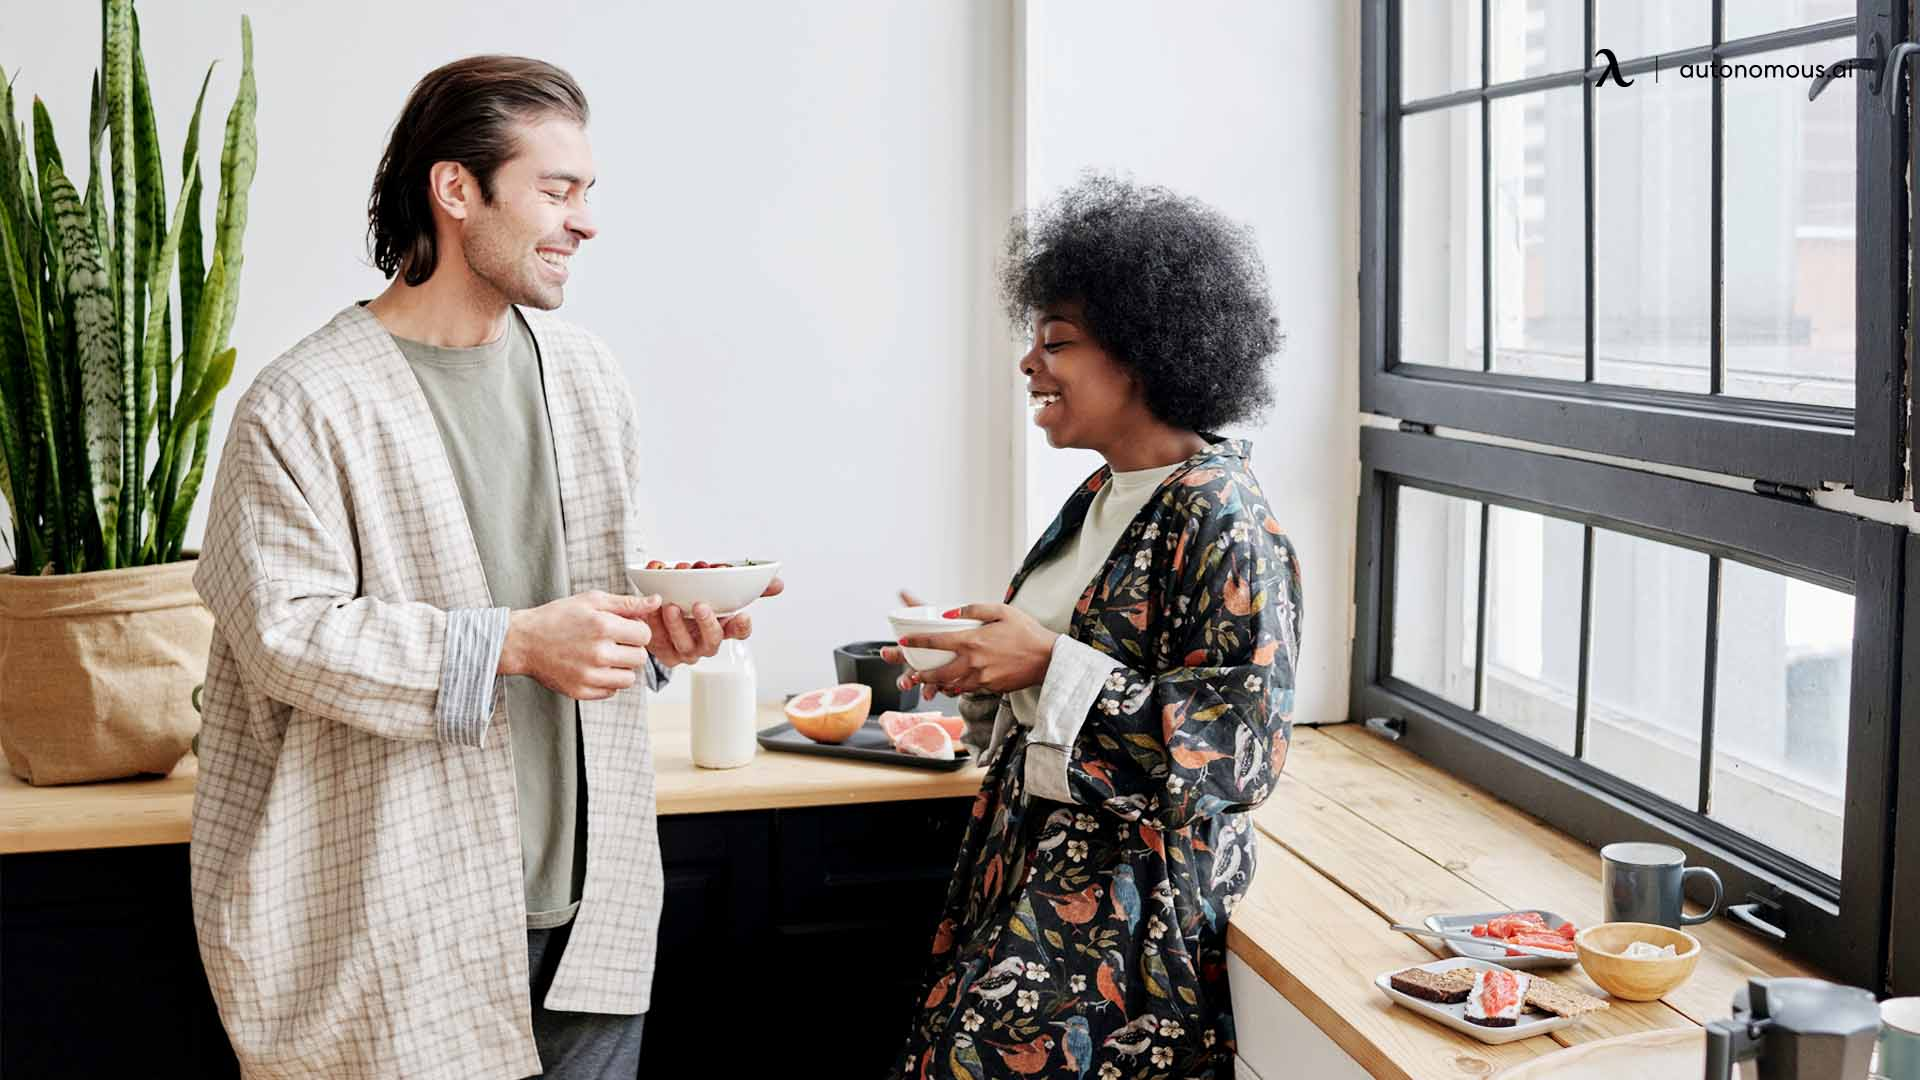 Connect with Your Co-Workers on a Personal Level